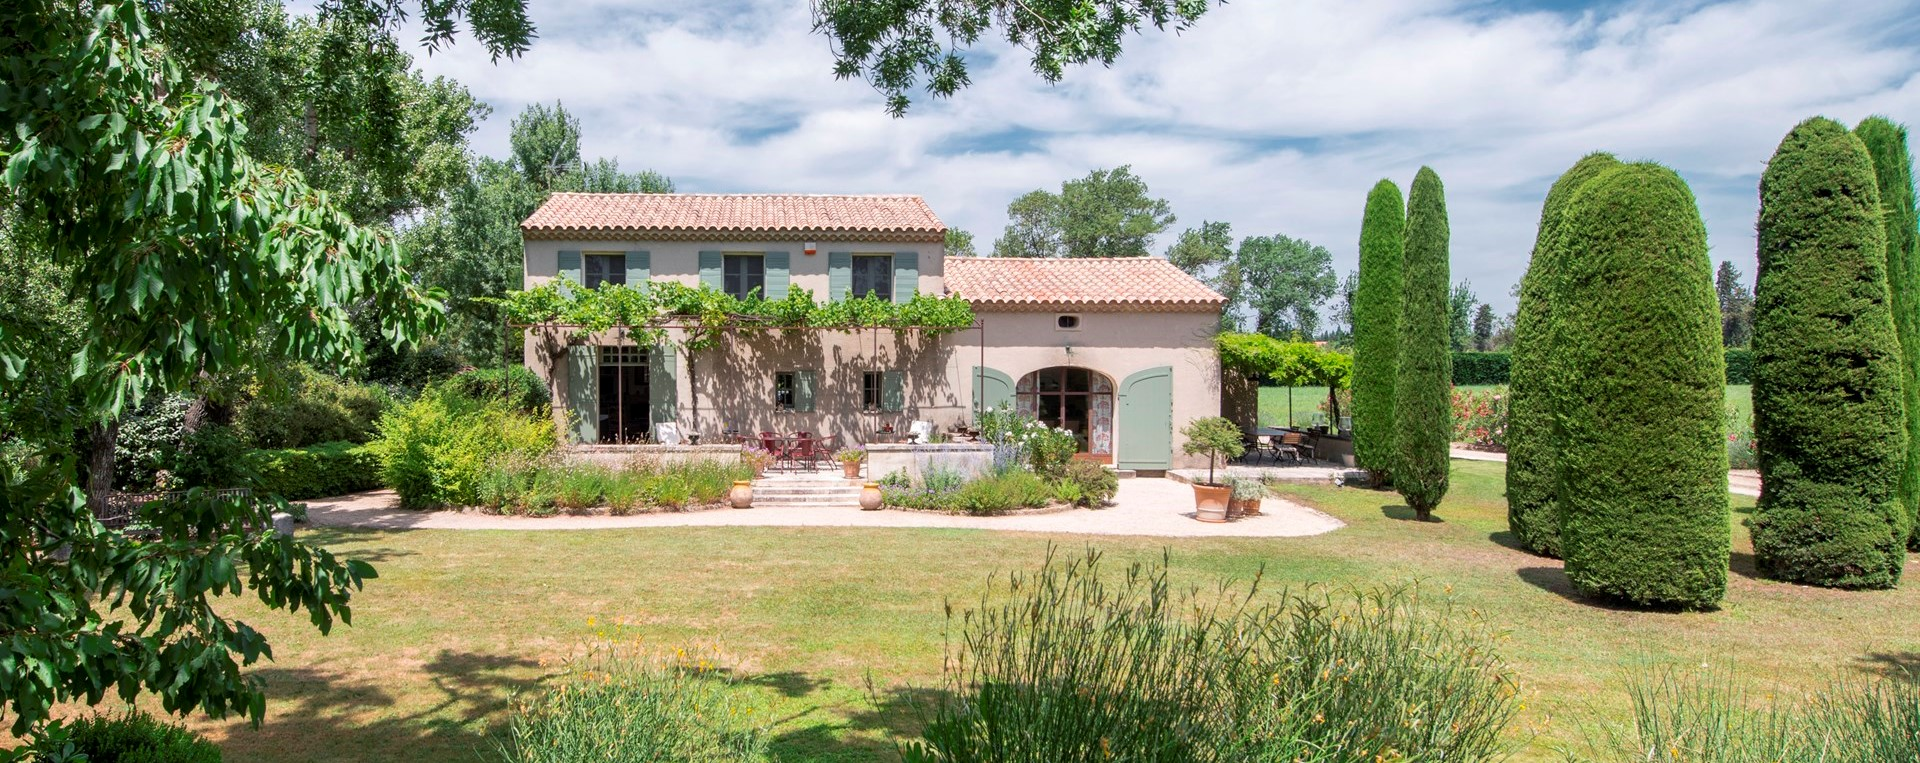 luxury-3-bedroom-villa-provence-france